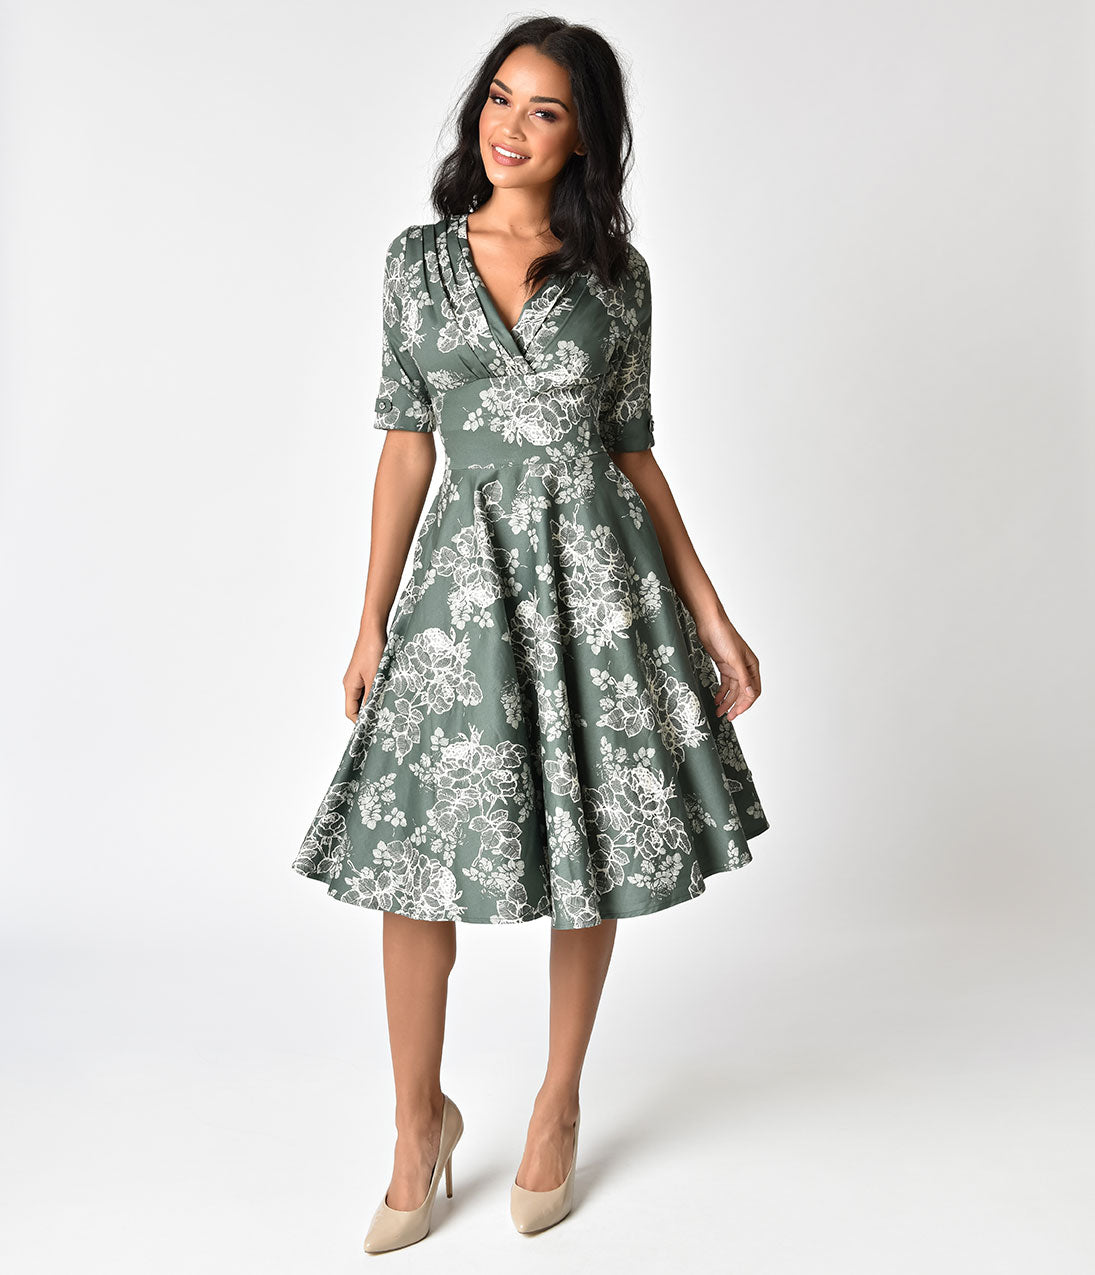 Pin Up Dresses | Pinup Clothing & Fashion Unique Vintage 1950S Sage Green Floral Delores Swing Dress With Sleeves $98.00 AT vintagedancer.com